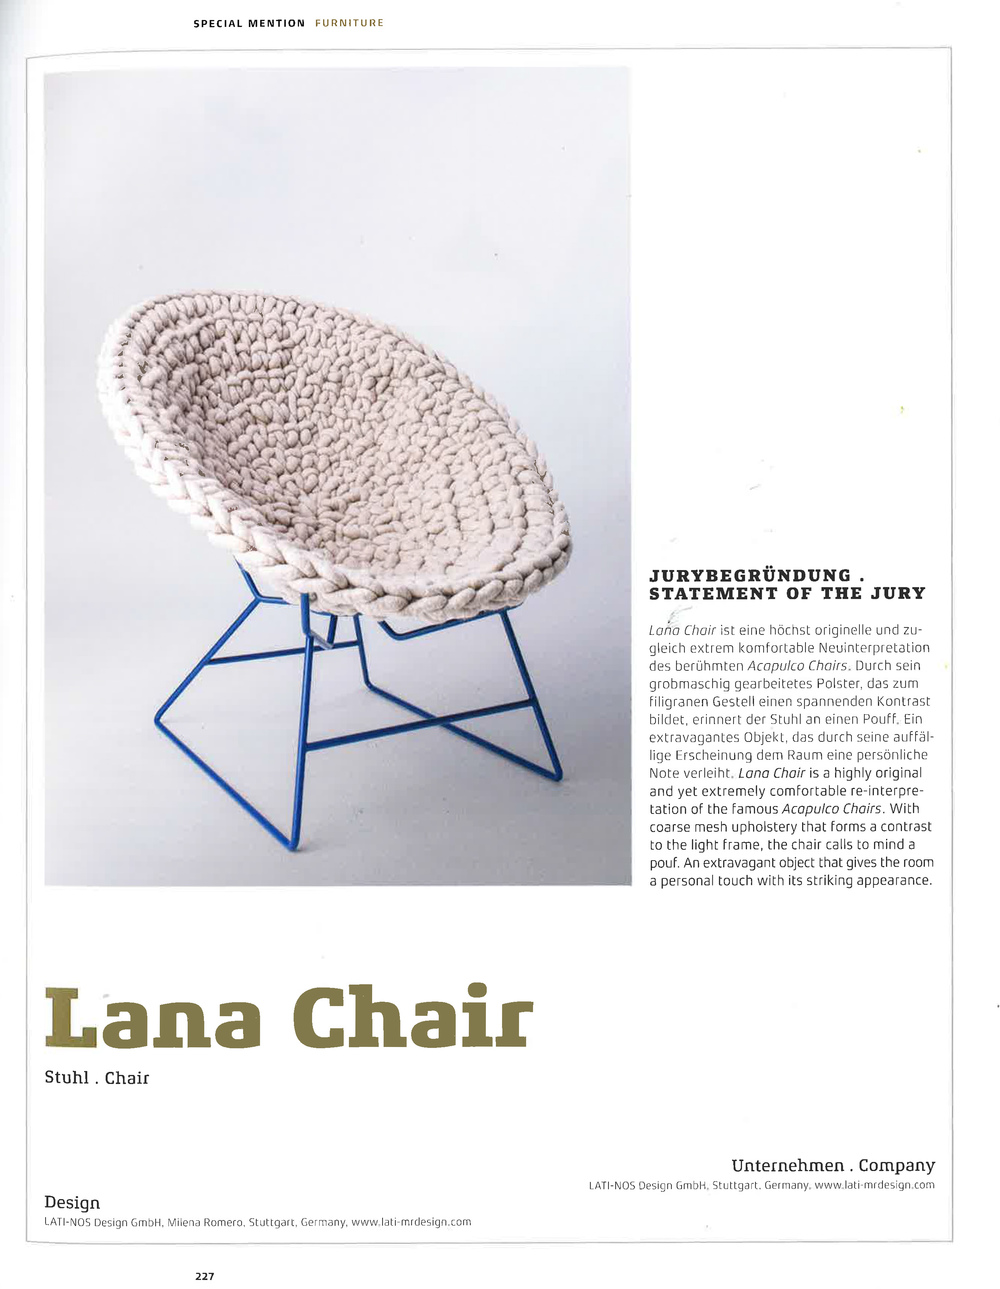 German+Design+Award+2016+Lana+Chair.jpg